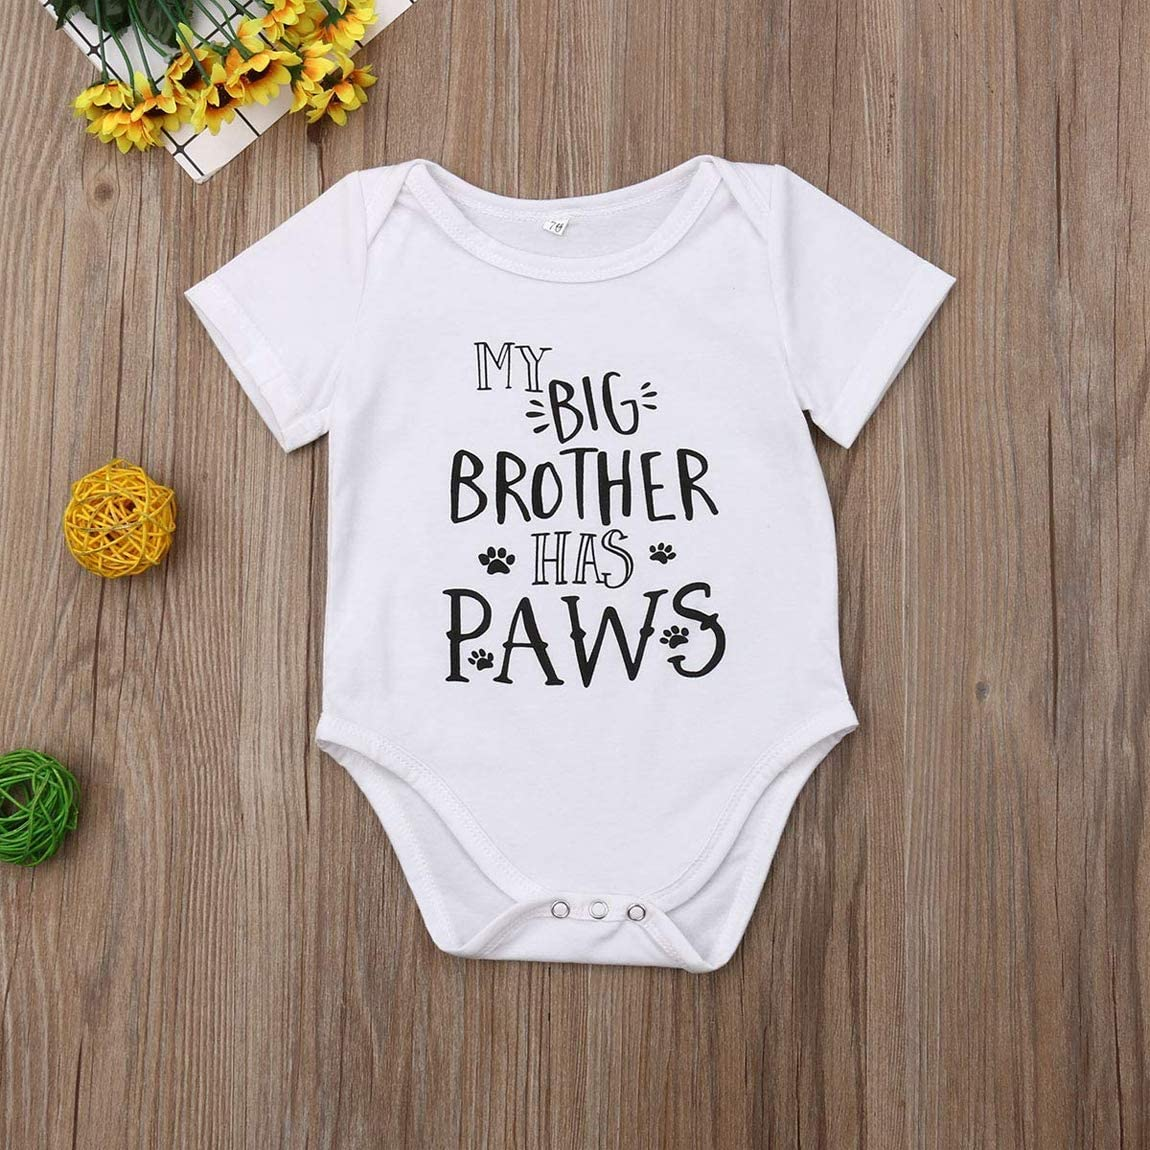 LIKEVER Newborn Baby Boy Girl Clothes Funny Letter Print Romper Short Sleeve One Piece Bodysuit Big Brother Sister Outfits